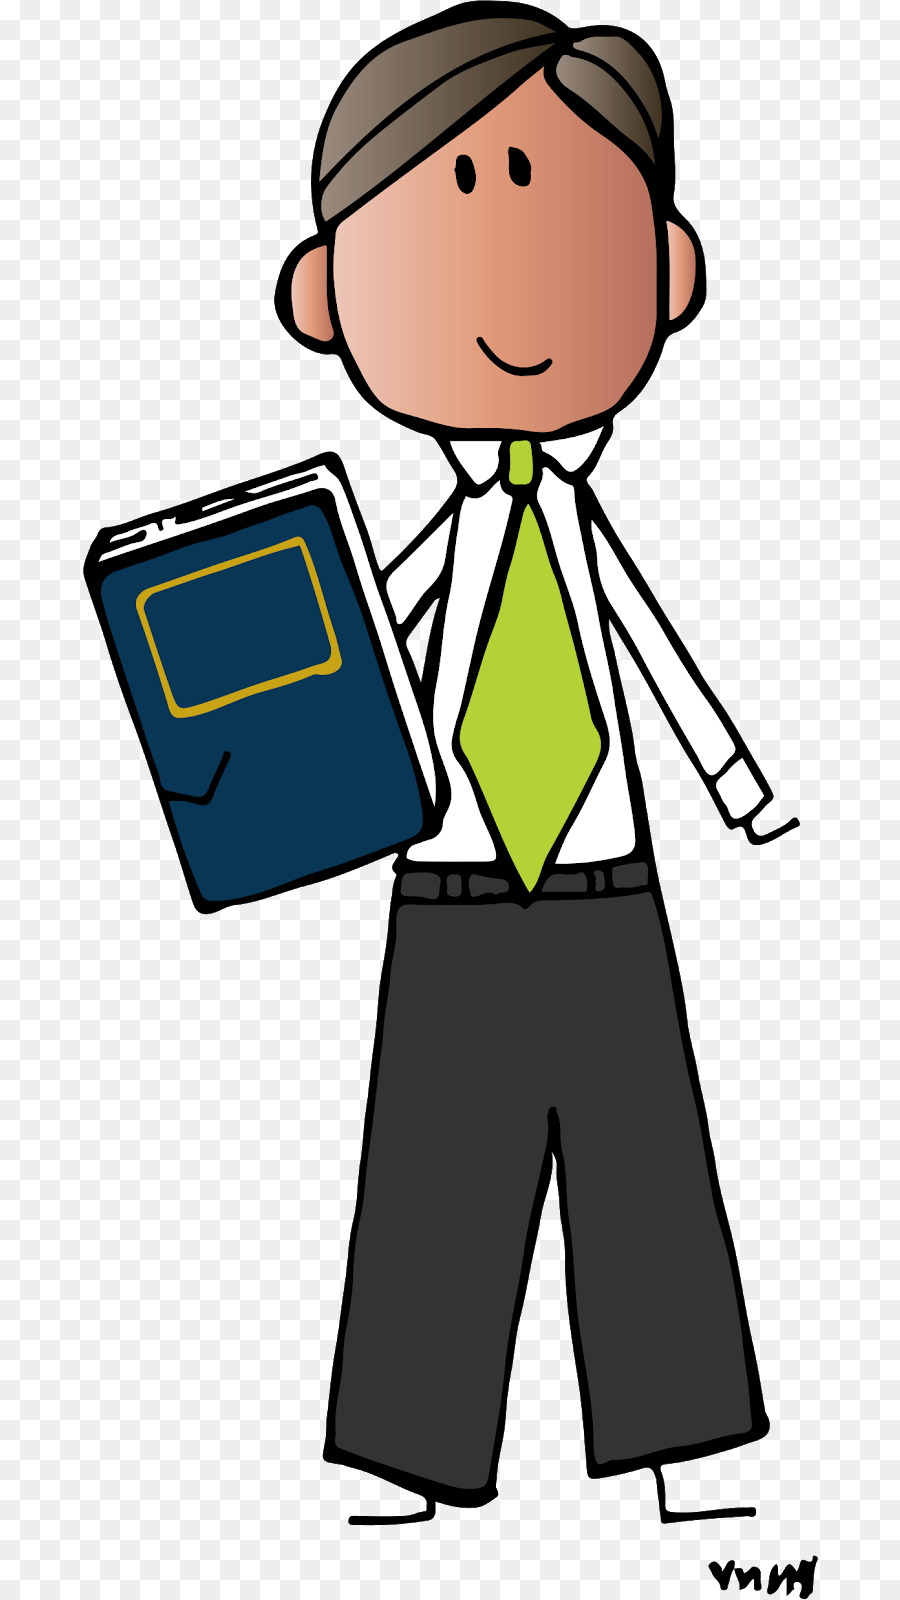 Angles clipart lds clipart images gallery for free download.